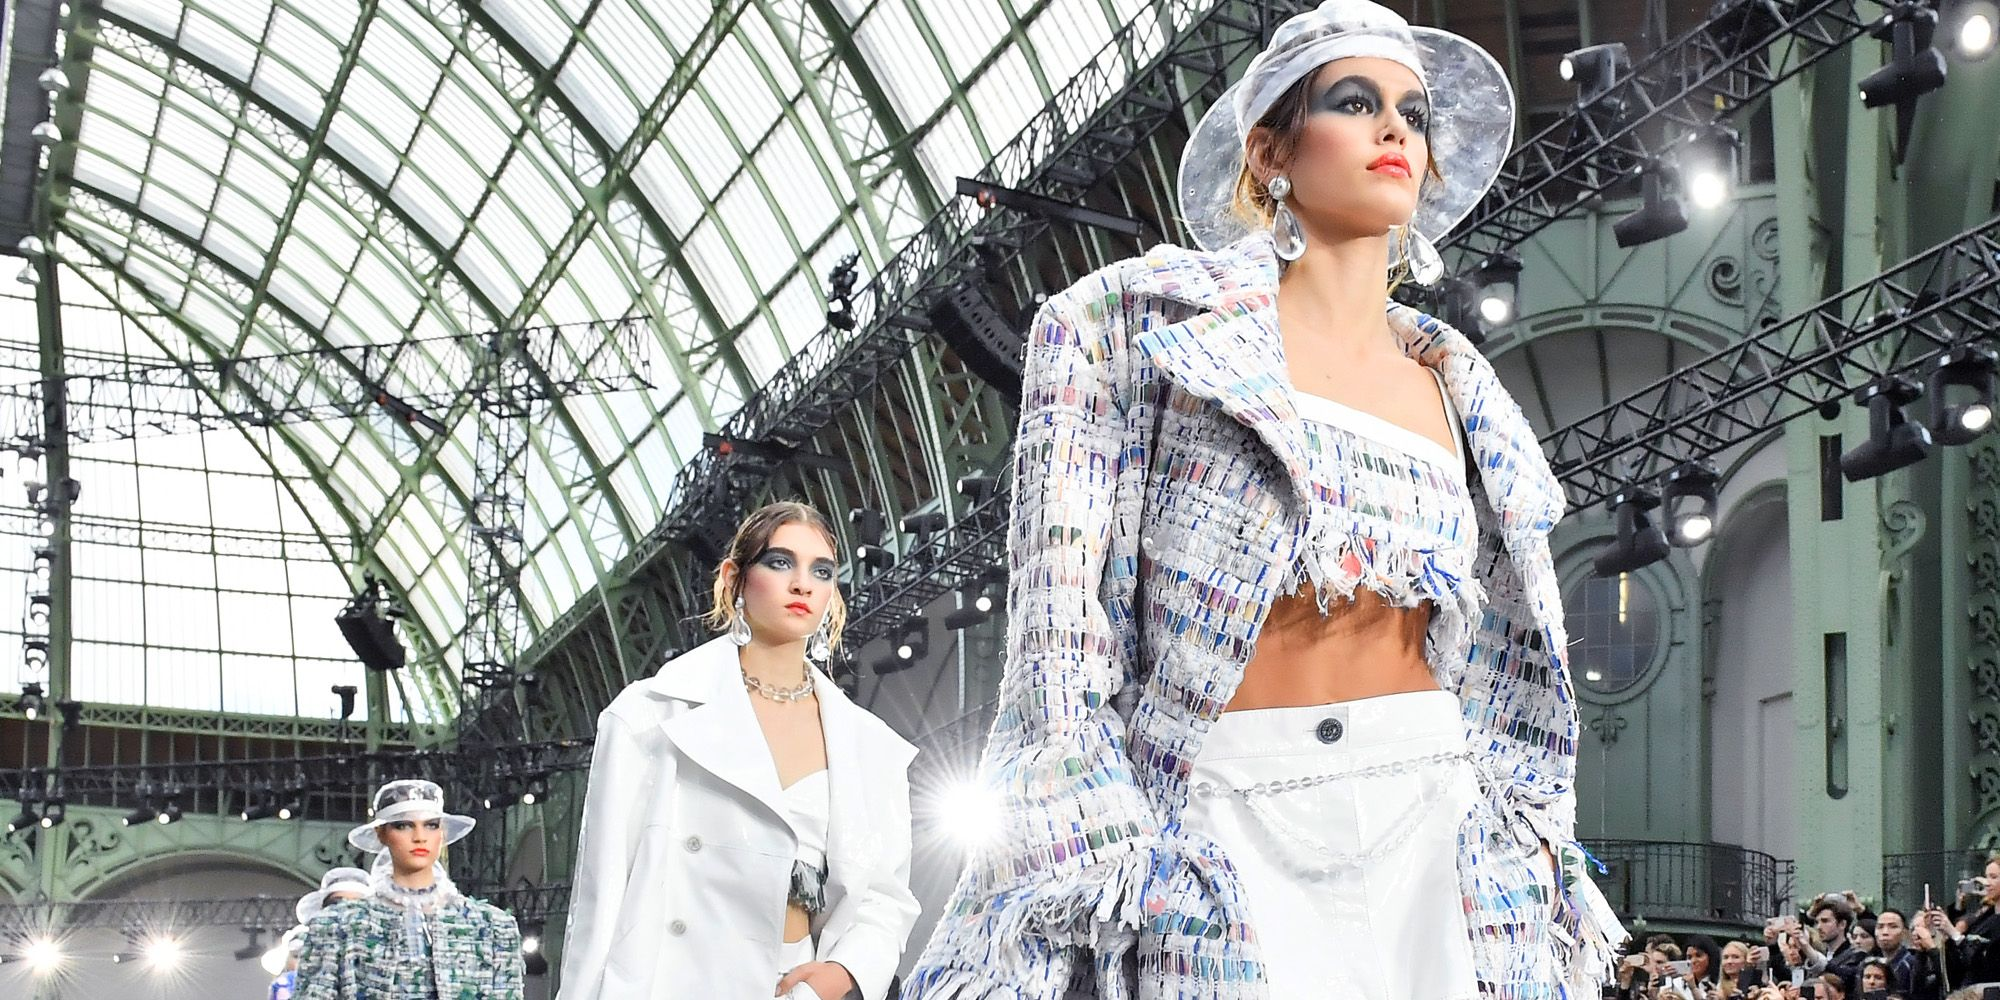 Chanel SS18 Runway Show